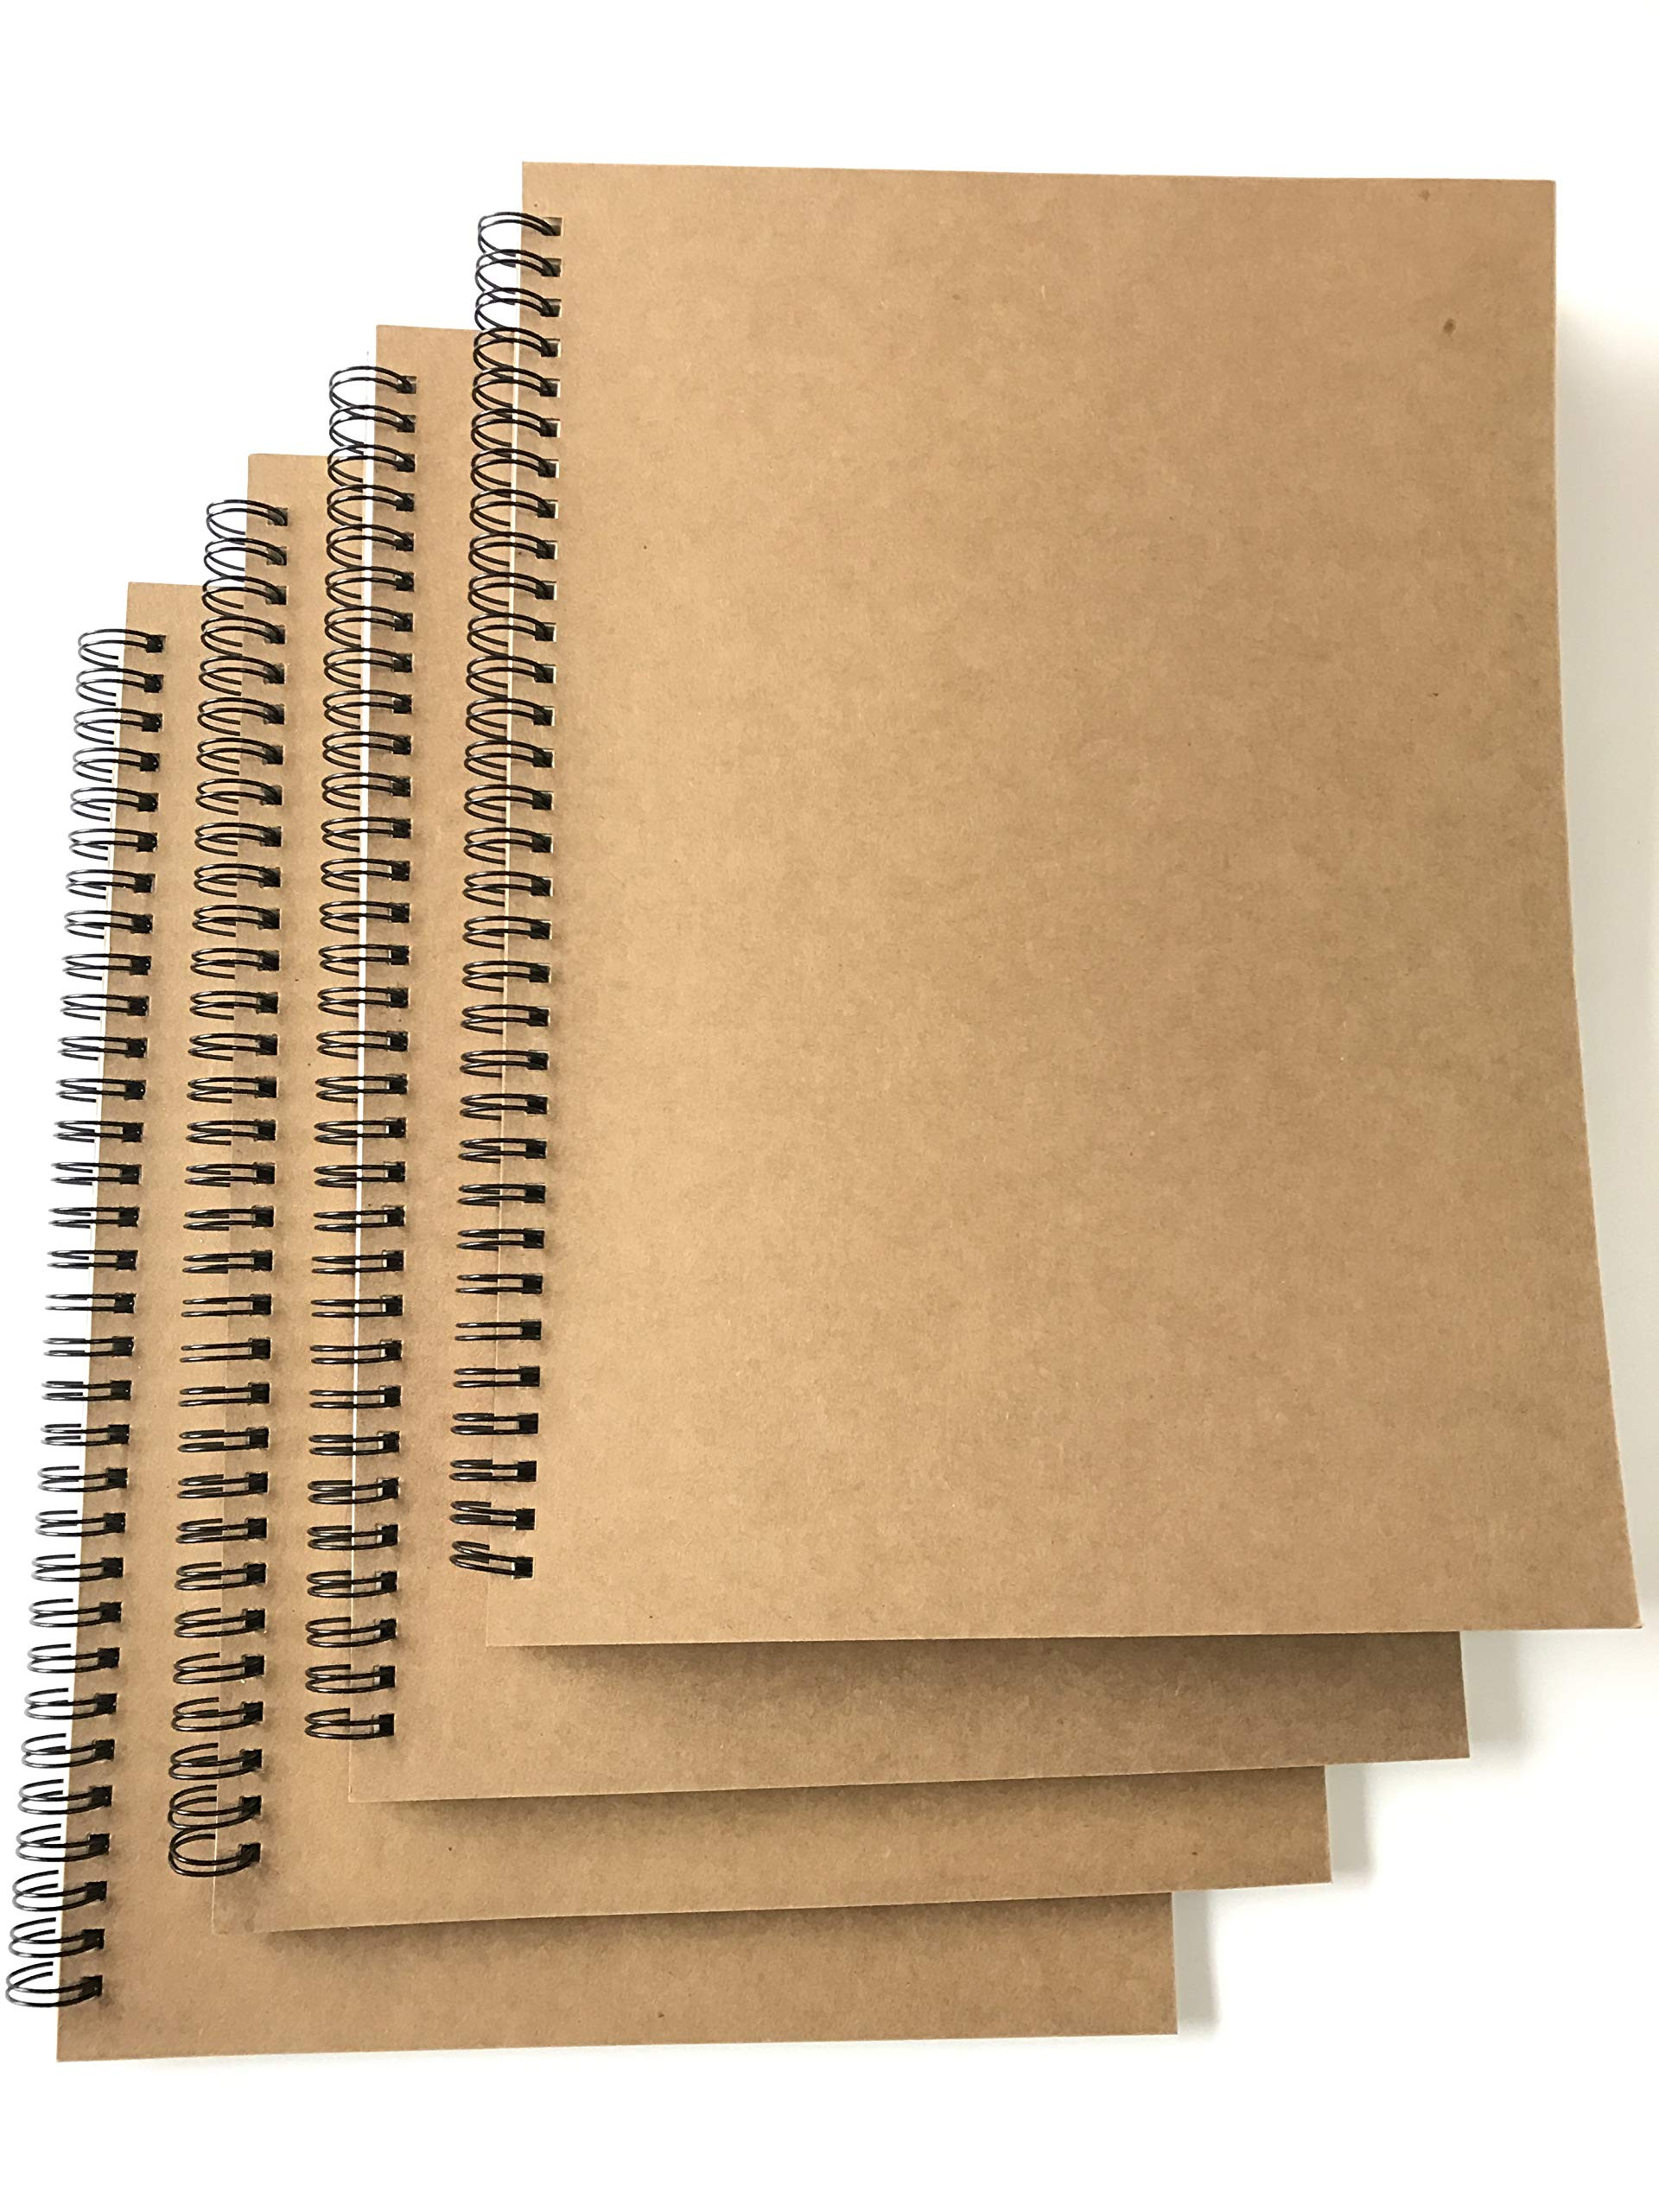 VEEPPO A4/B5 Big Thick Spiral Bound Notebooks and Journals Bulk 2/4Pack Blank/Lined Scrapbook Backpack Books 50Sheets/100Pages per Book (A4 Blank-4 Pack)